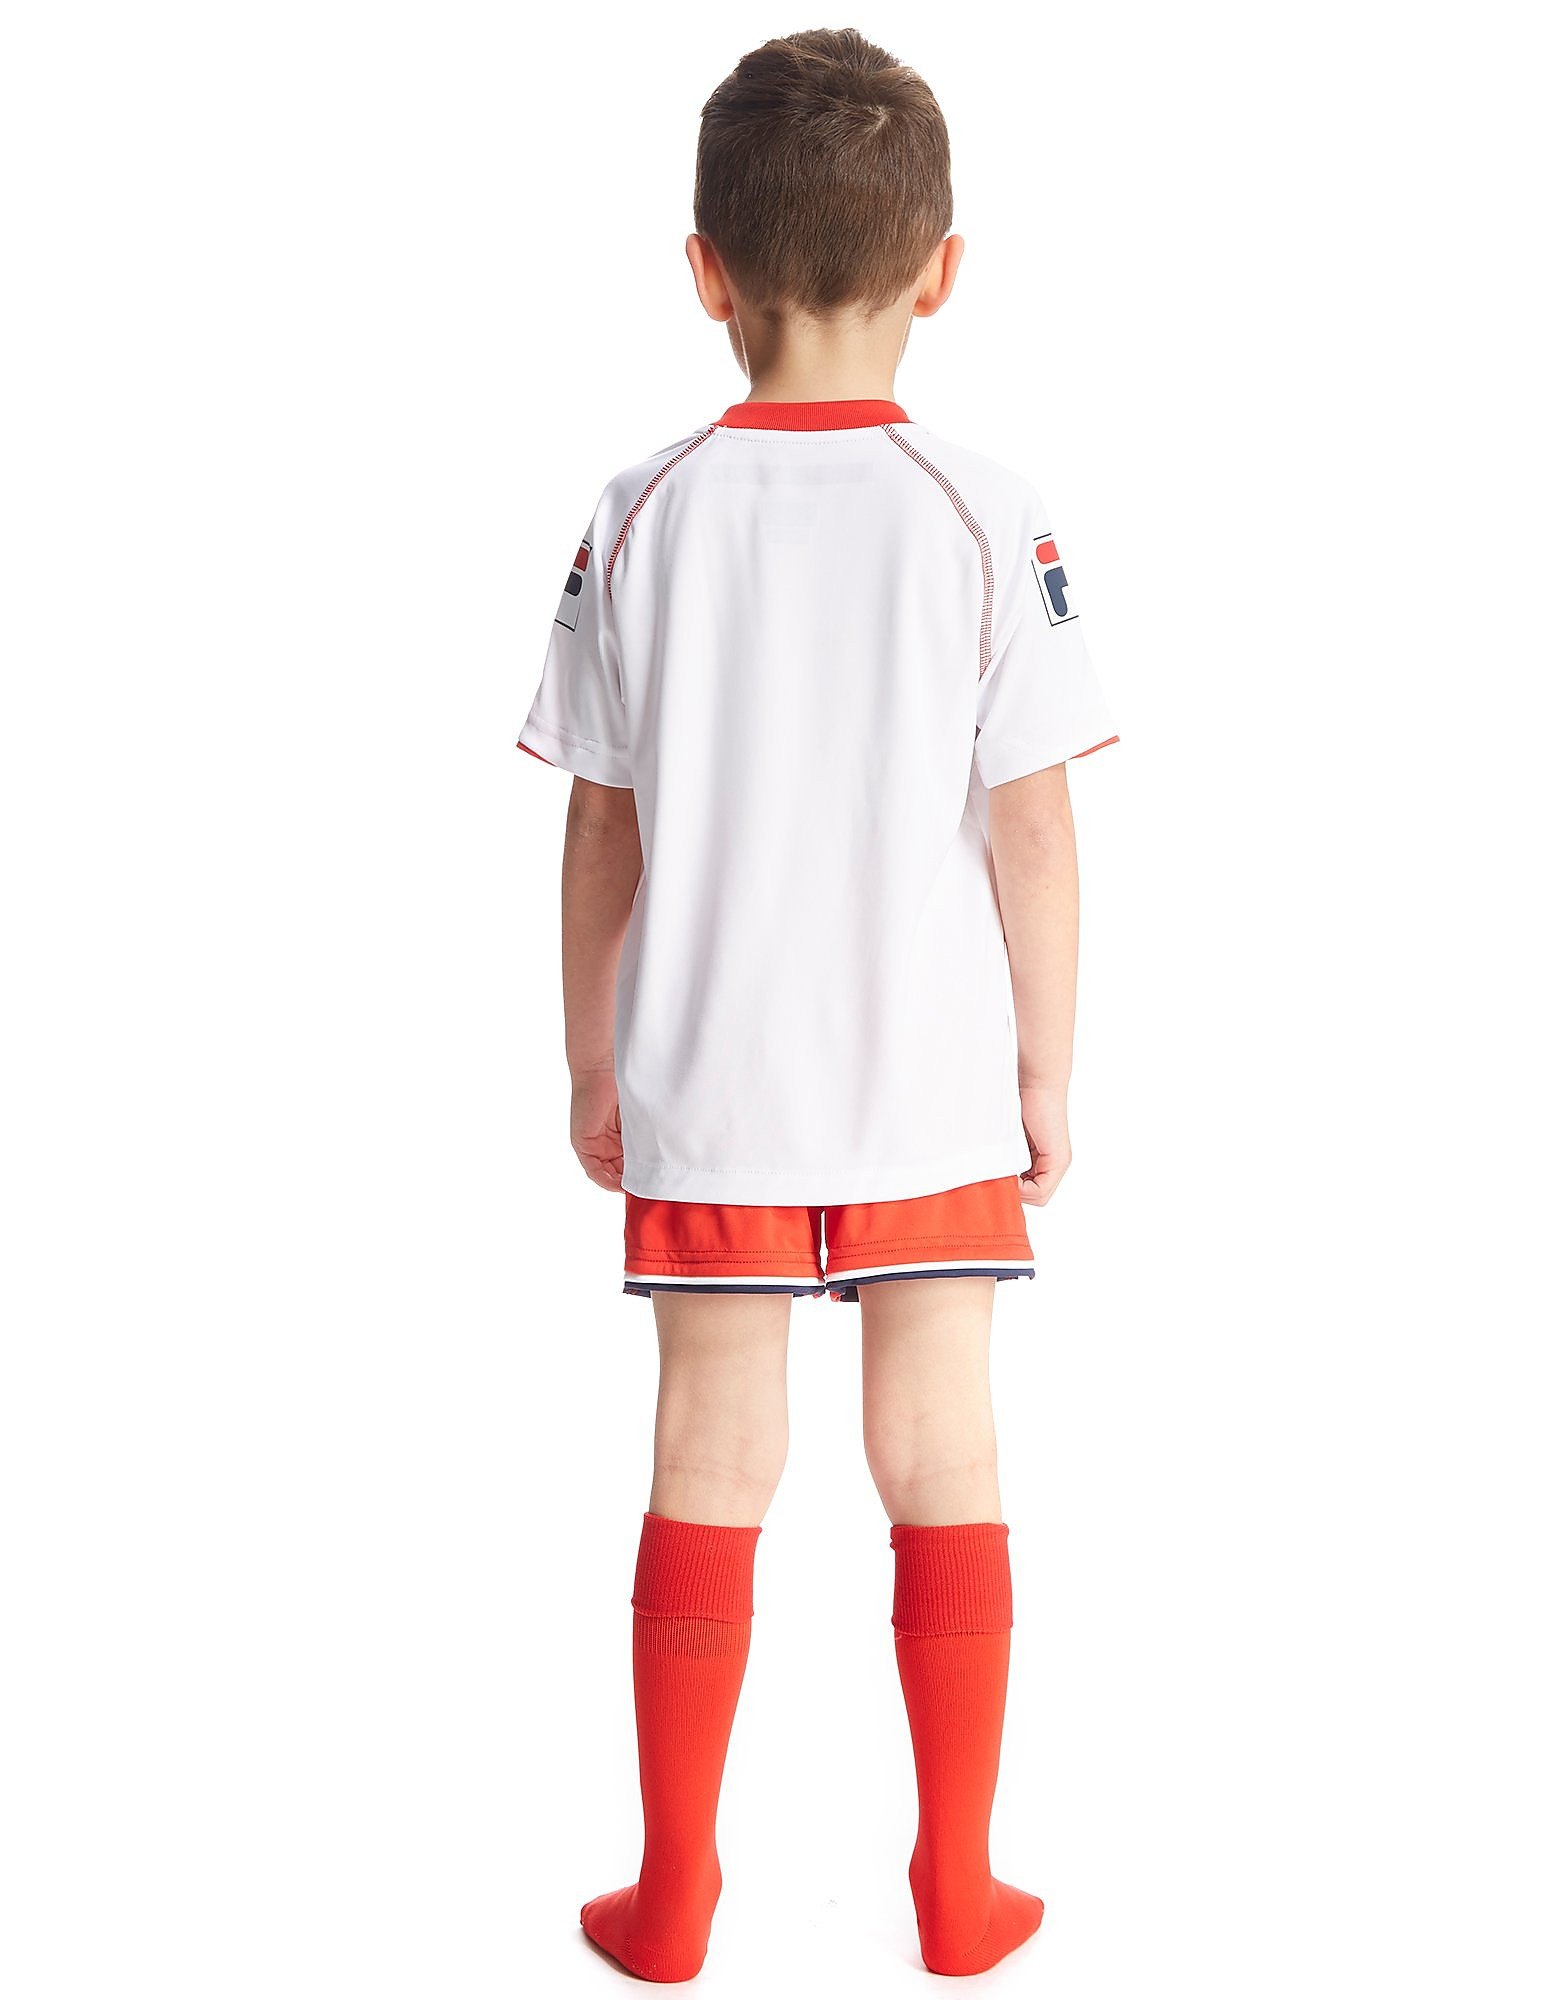 Fila Stevenage 2014 Childrens Home Kit